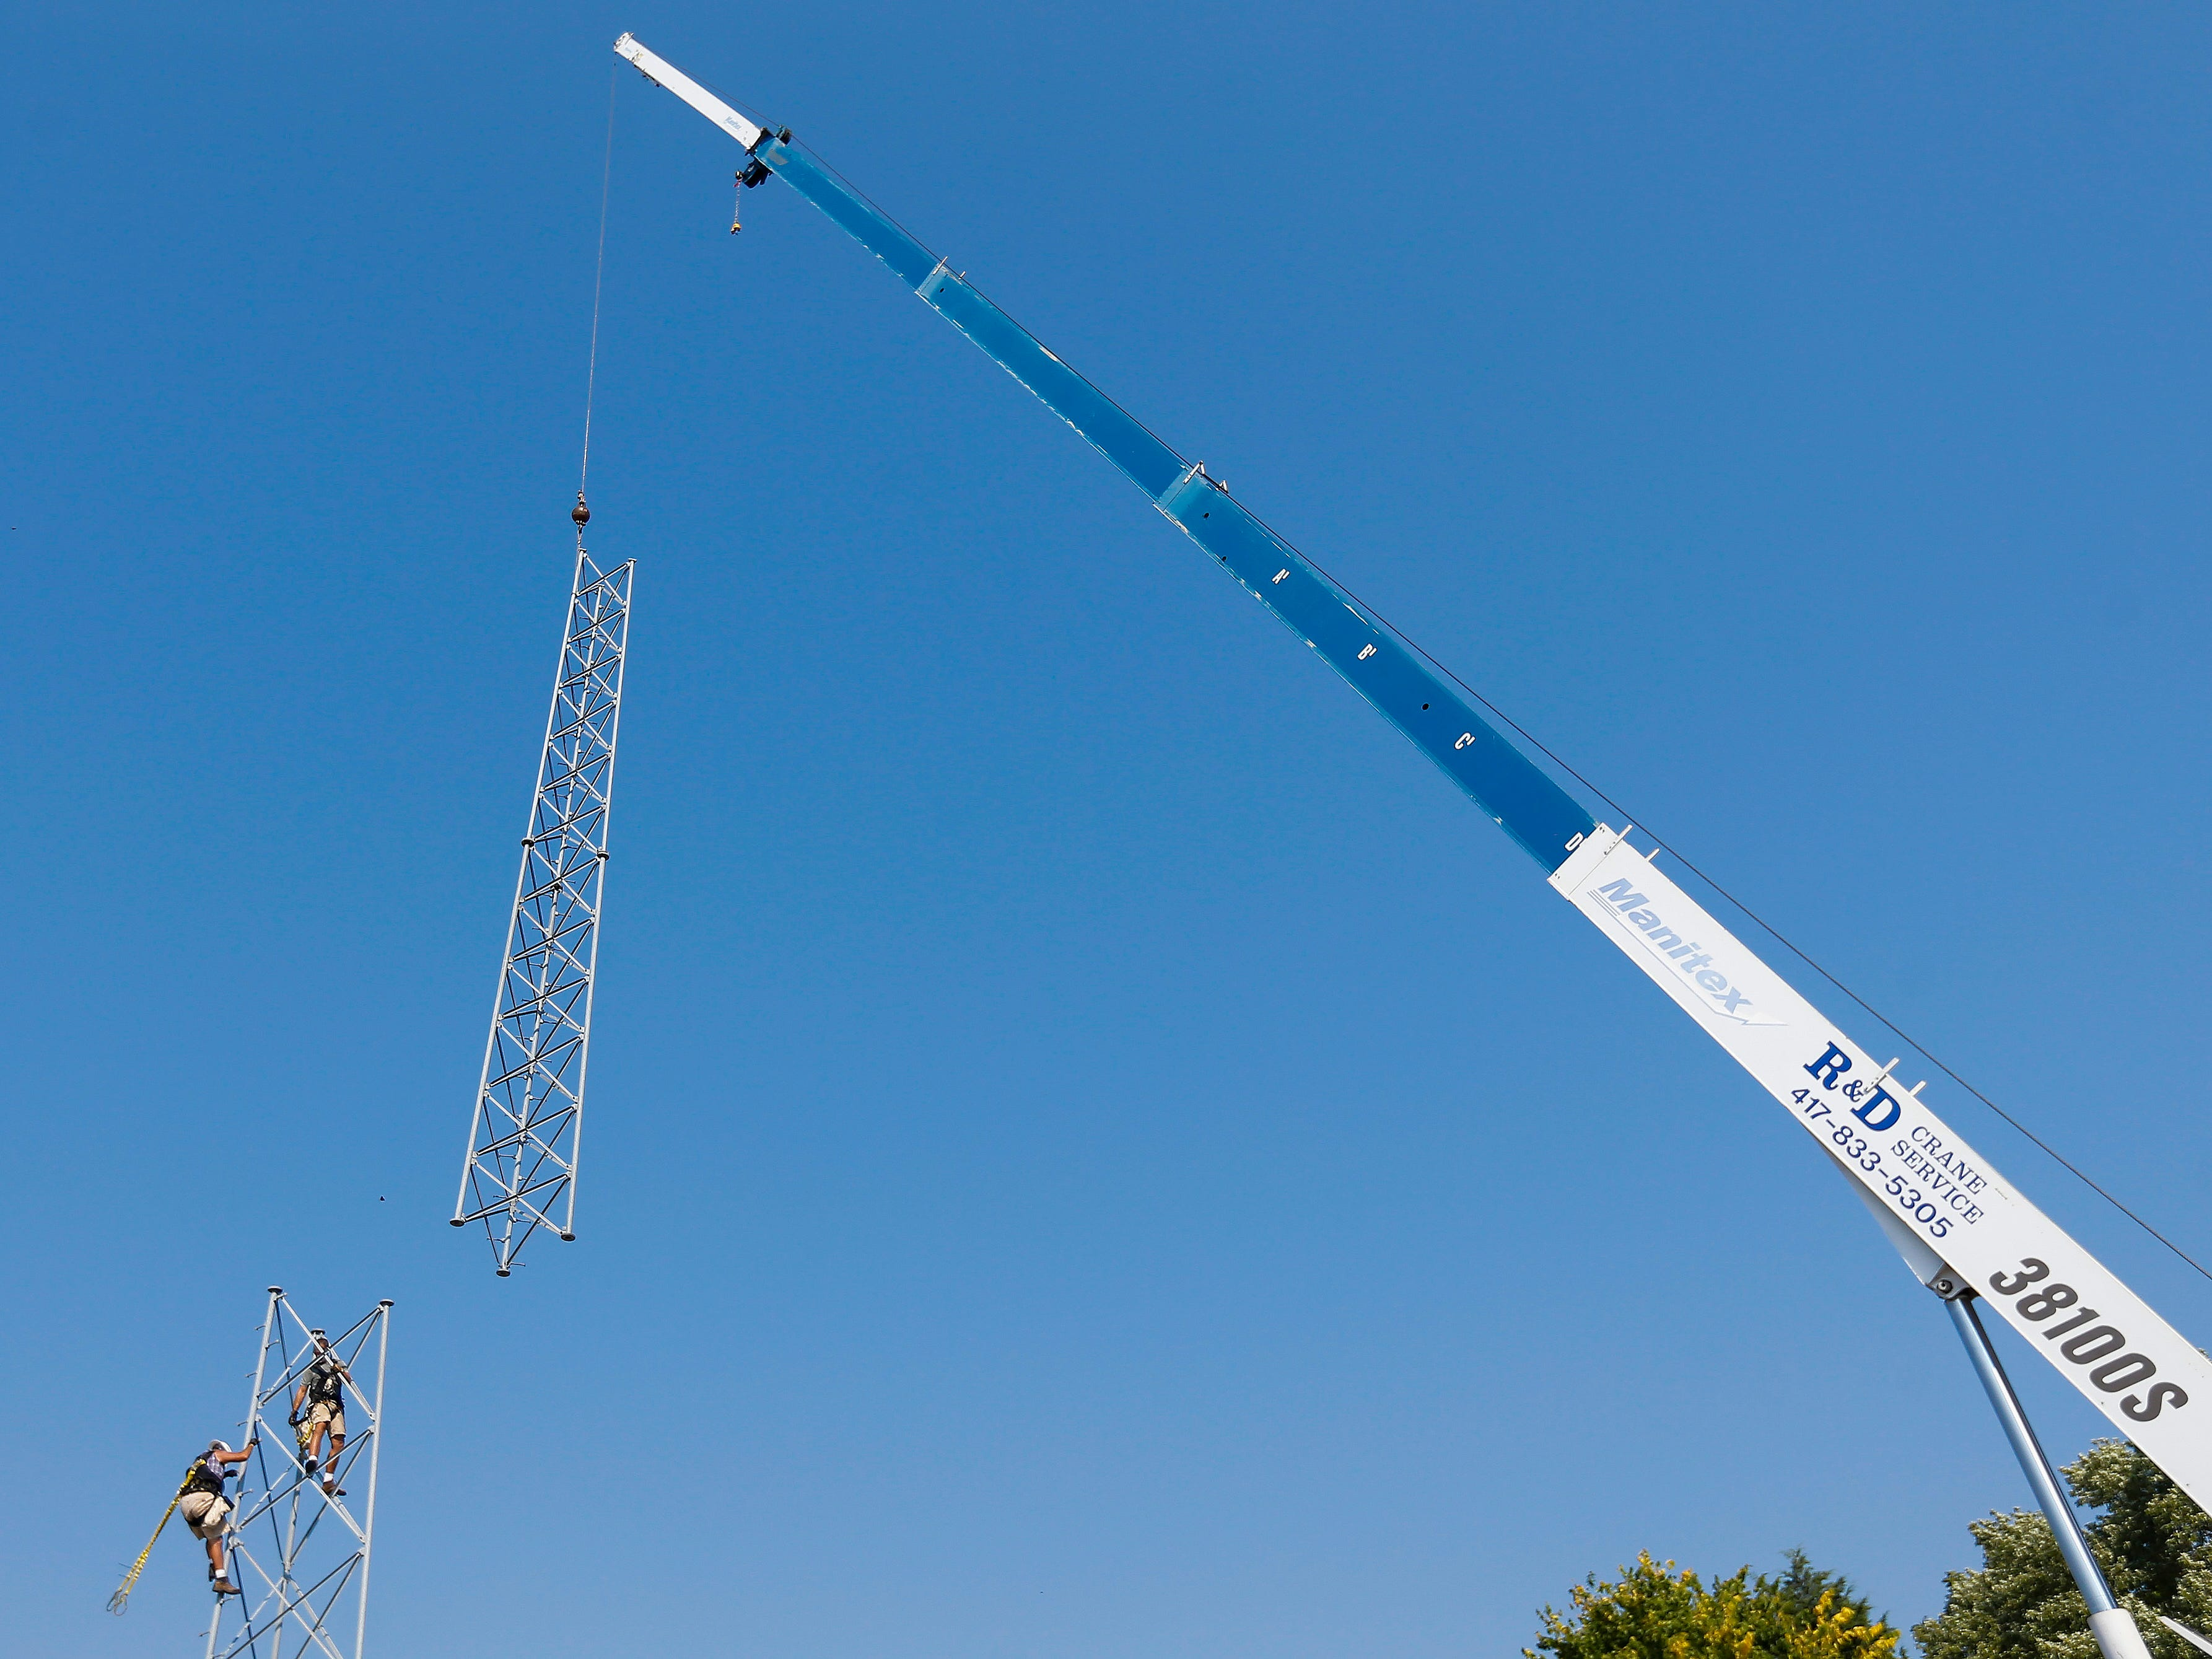 Craig House, right, and Tim Sloan, both of DIY Broadband, watch as a 40-foot section of an old pager tower in Springfield is lowered to the ground on Thursday, Sep. 20, 2018. The tower was located on property just purchased by Arnie's Plumbing, Heating and Air Services near the intersection of Chase Street and Lyon Avenue.